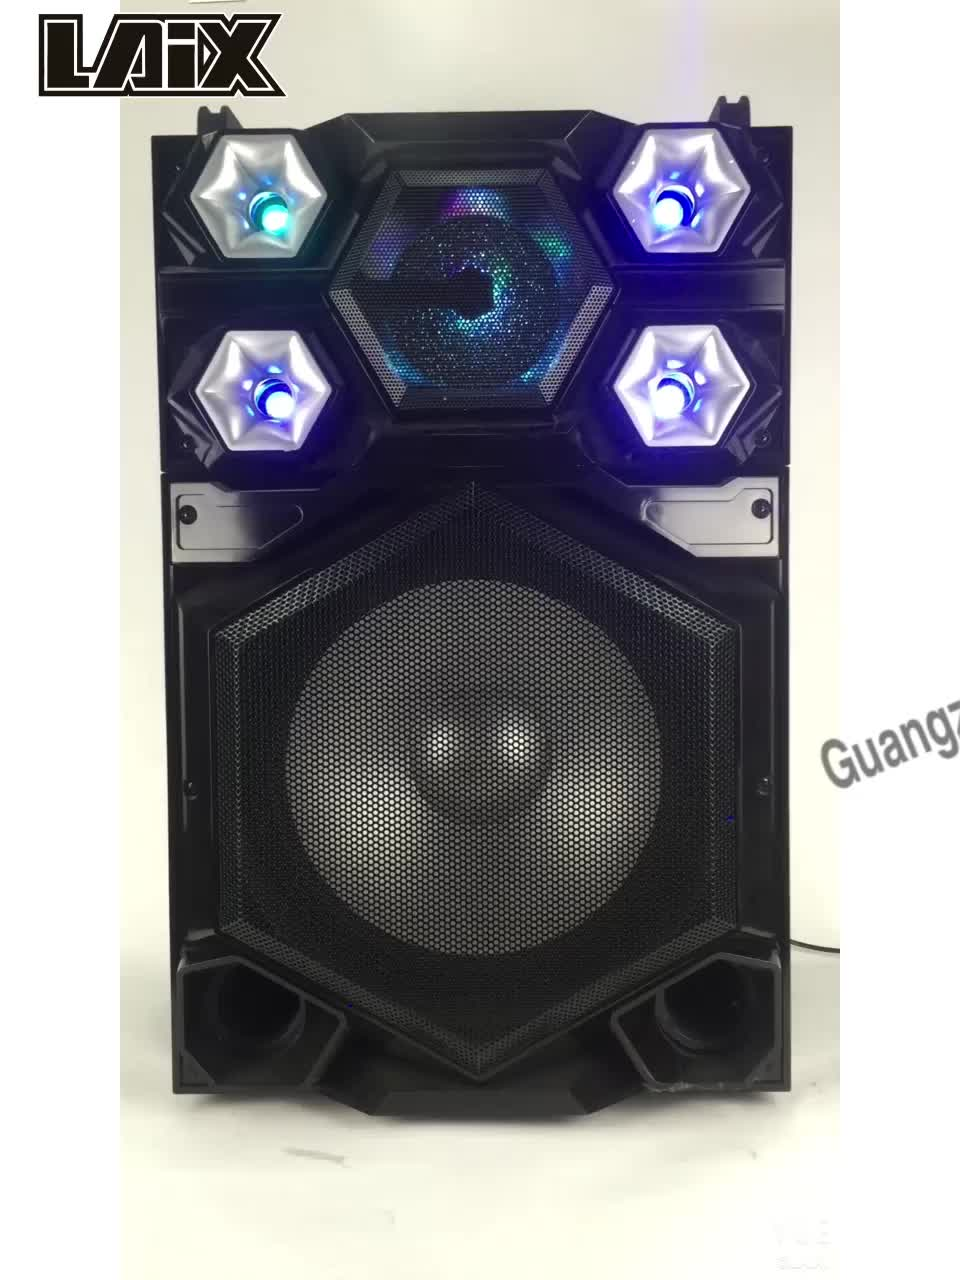 Laix SS-1 Wooden Case USB SD BT FM AUX MIC Input Disco LED Light Professional Audio Theater Stereo System Active Stage Speaker